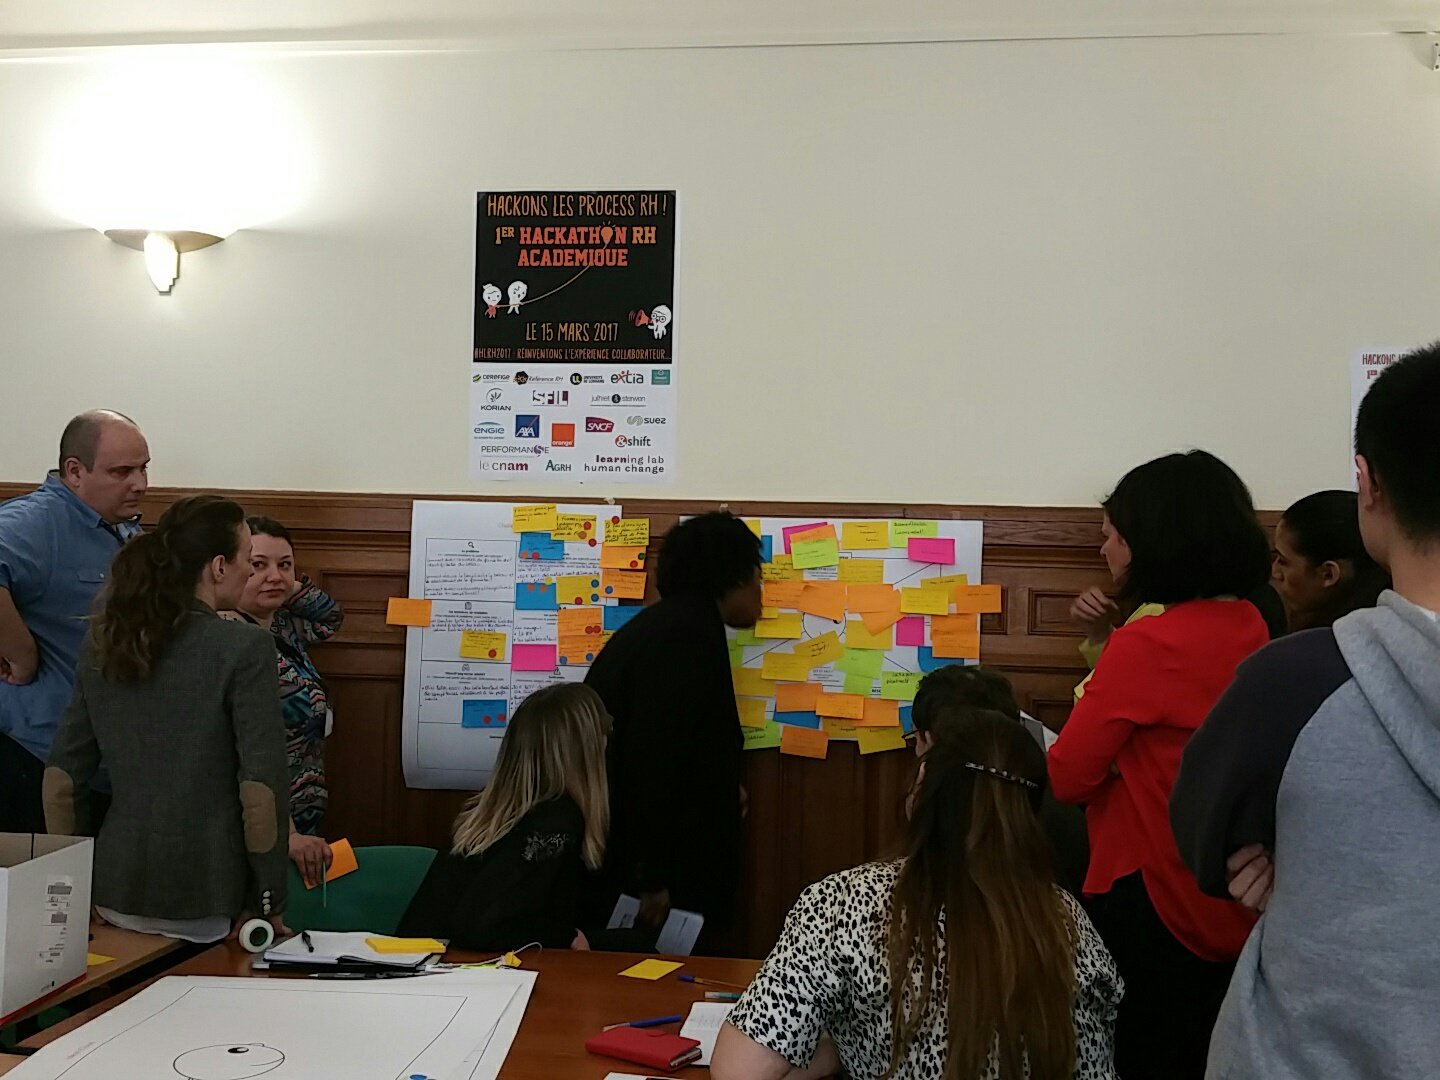 #HLRH2017 Brainstorming & Intelligence collective en action... Repenser ses process #OutOfTheBox https://t.co/OIzfgIM1iV